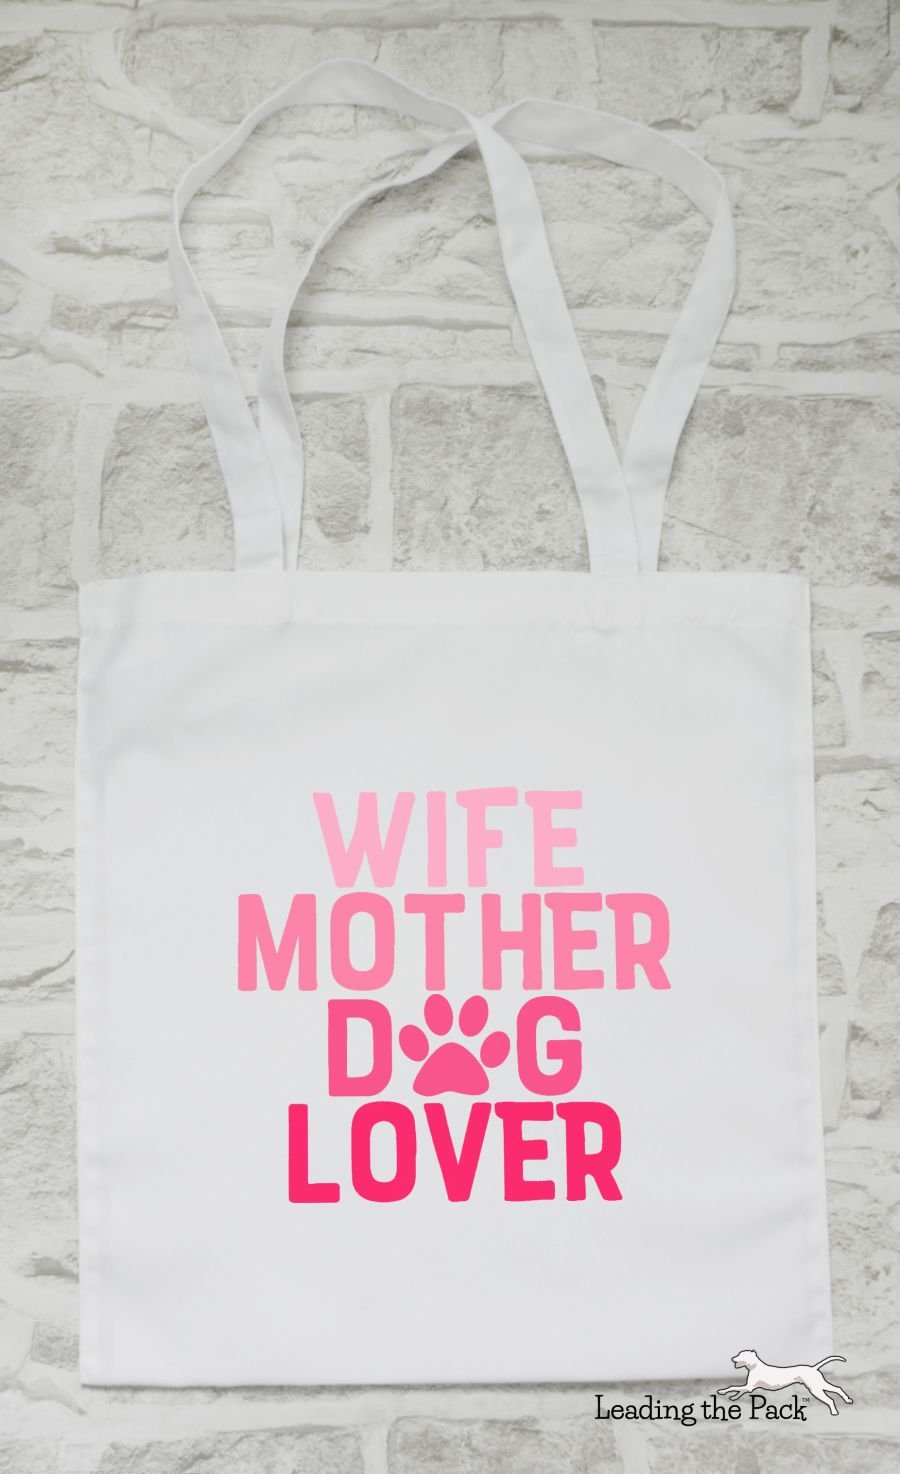 Wife mother dog lover tote bag